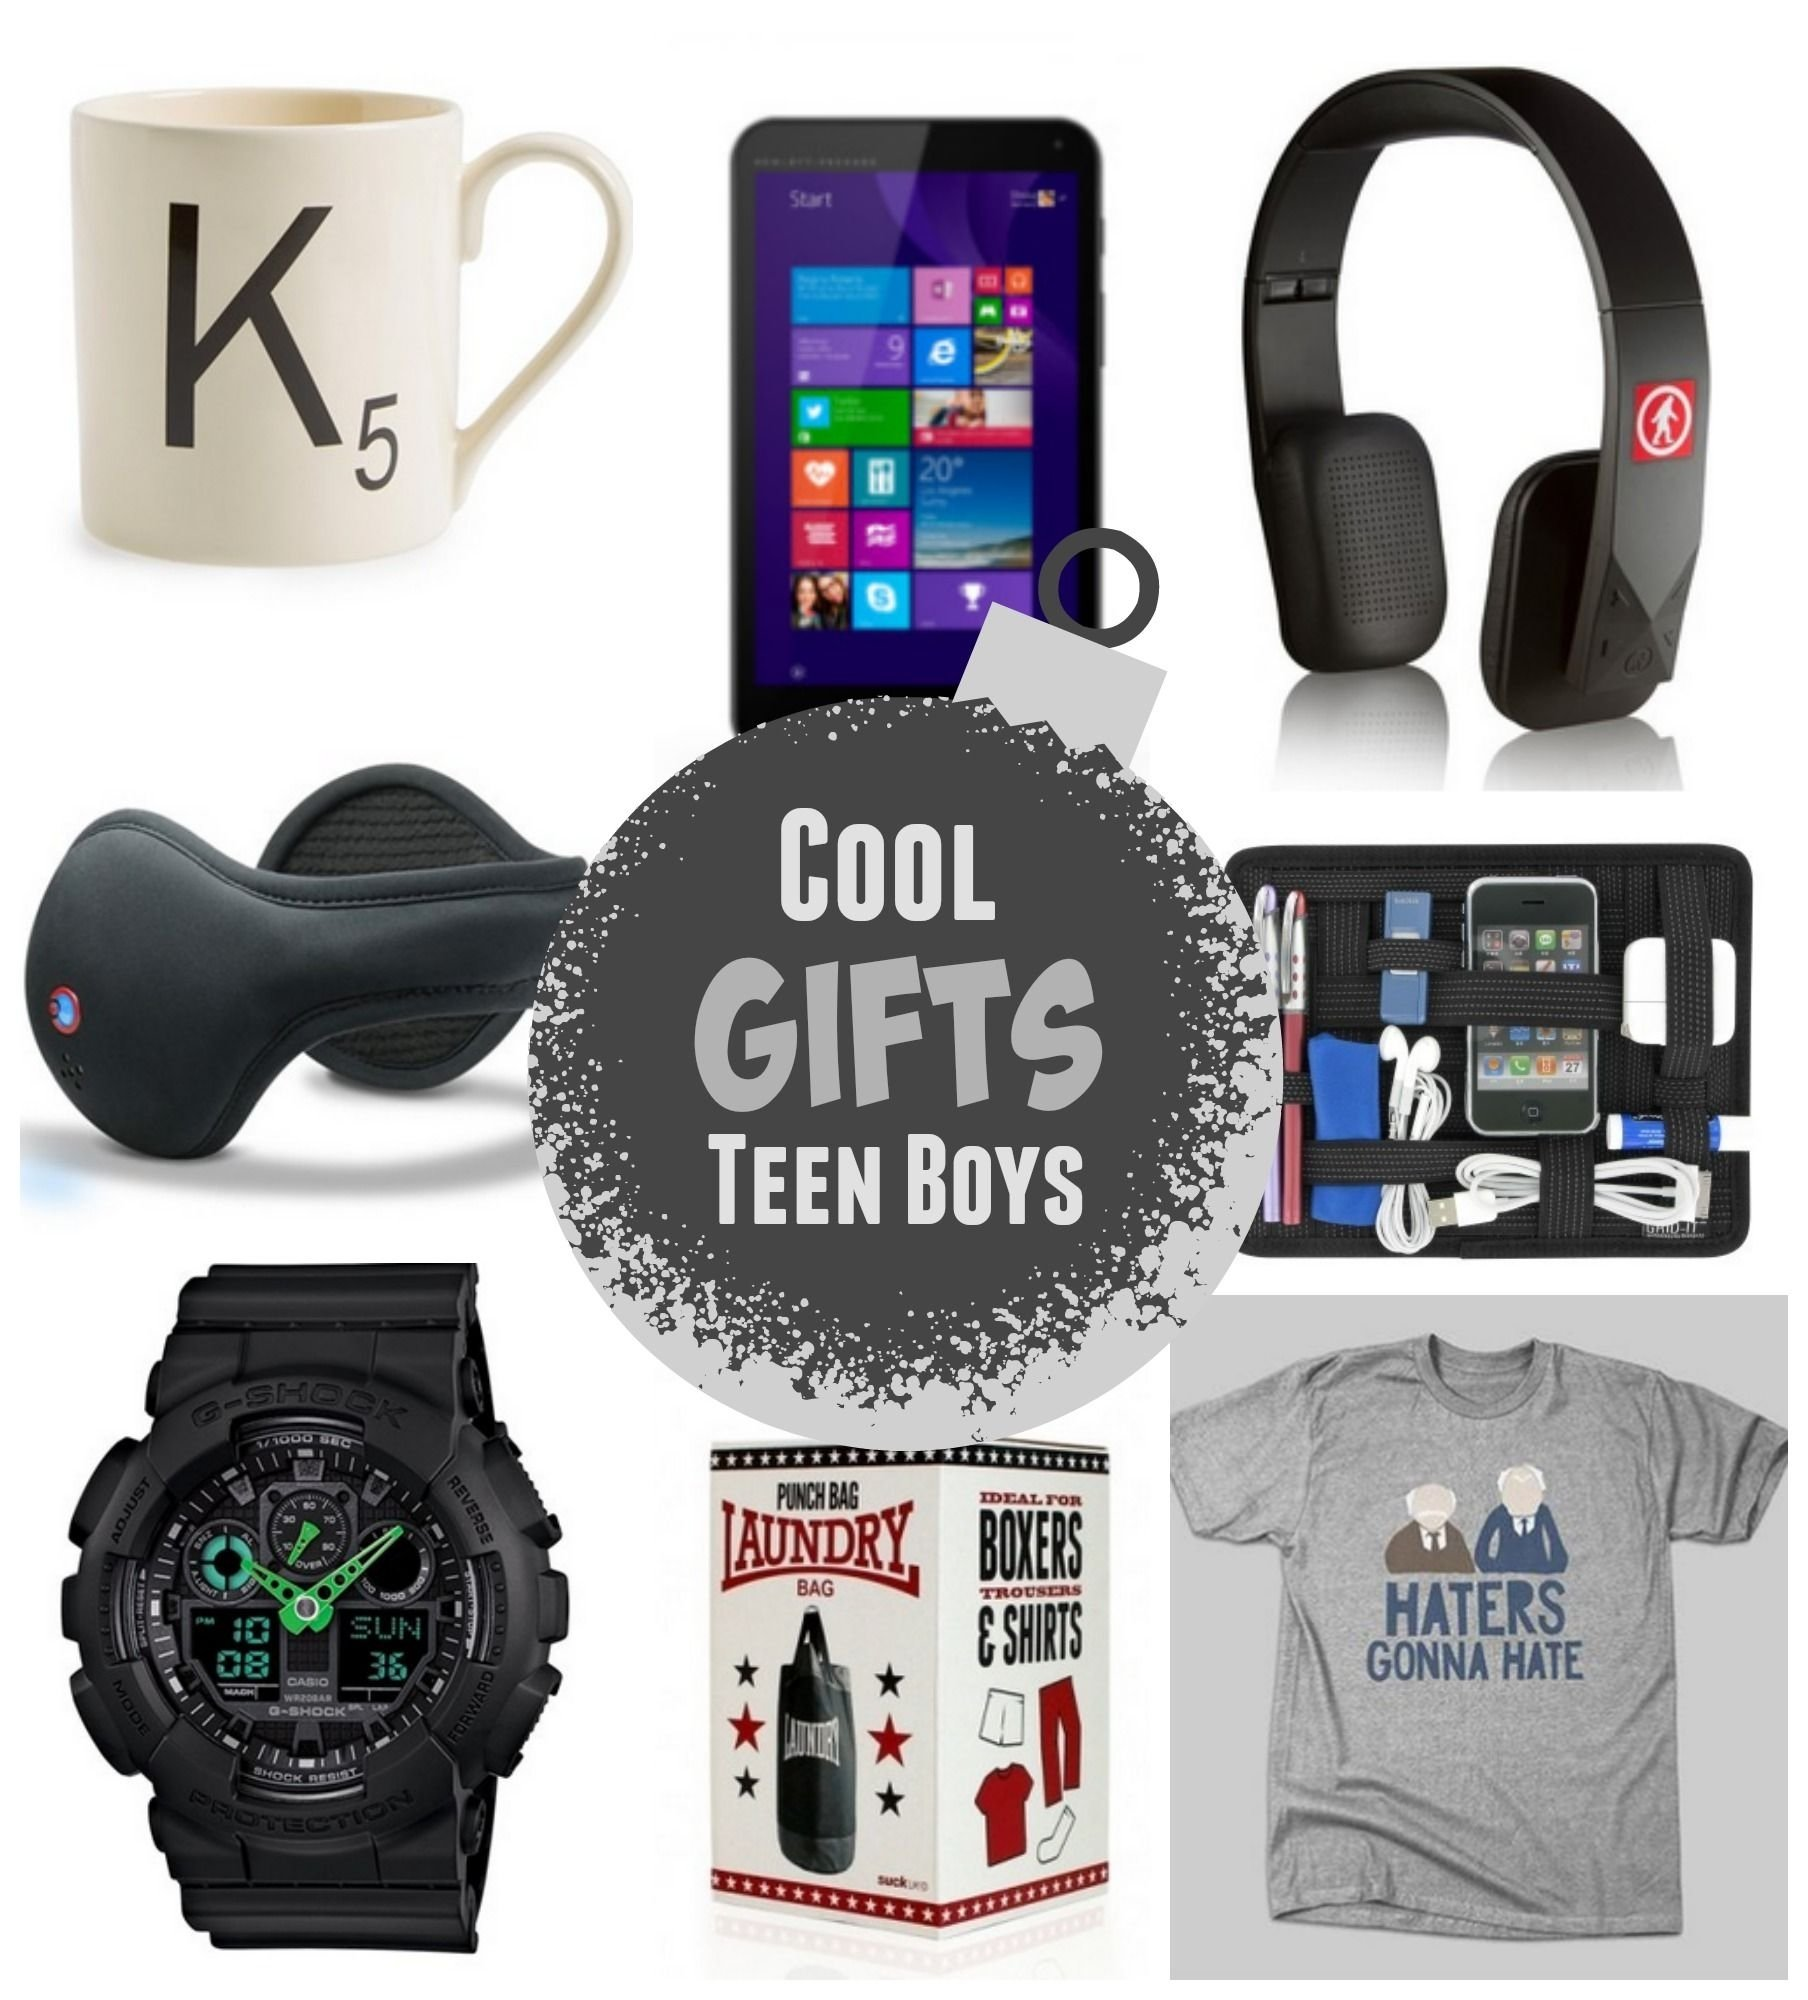 10 Spectacular Cool Birthday Gift Ideas For Guys cool gift ideas for teen boys teen boys teen and gift